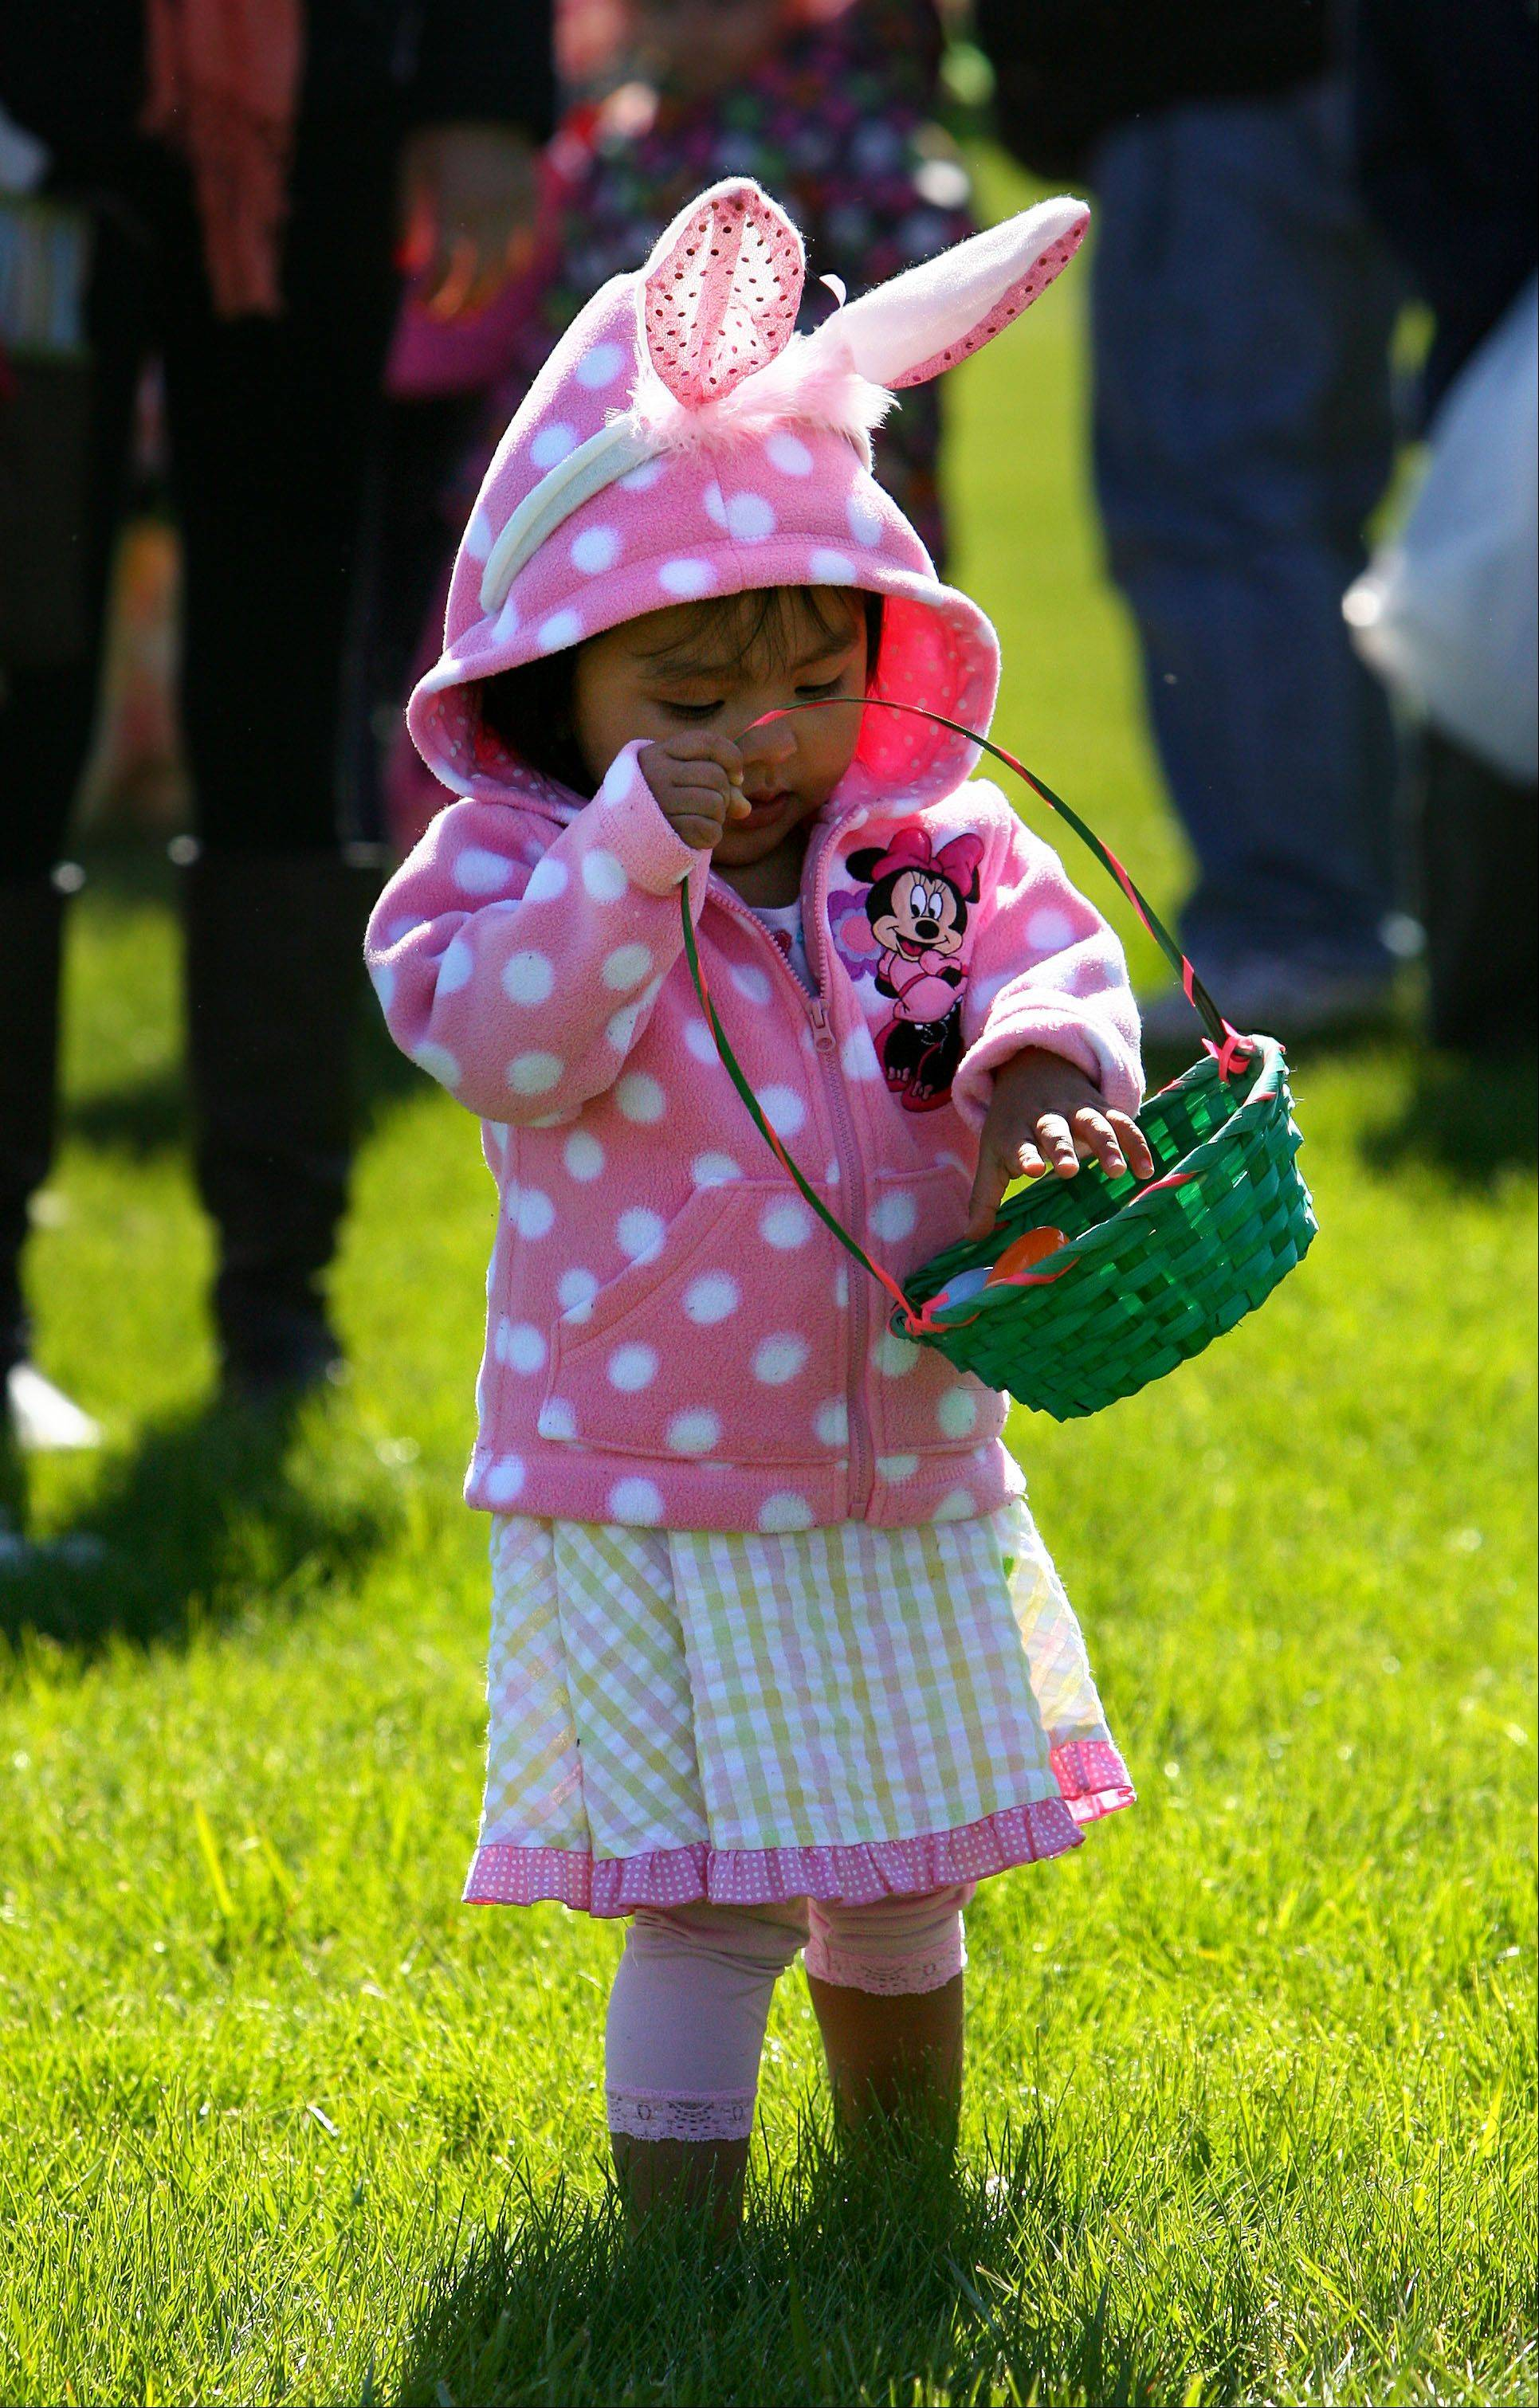 1-year-old Johanna Salgado puts eggs in her basket as she participates in an easter egg hunt at Keith Mione Community Park in Mundelein Friday Morning.